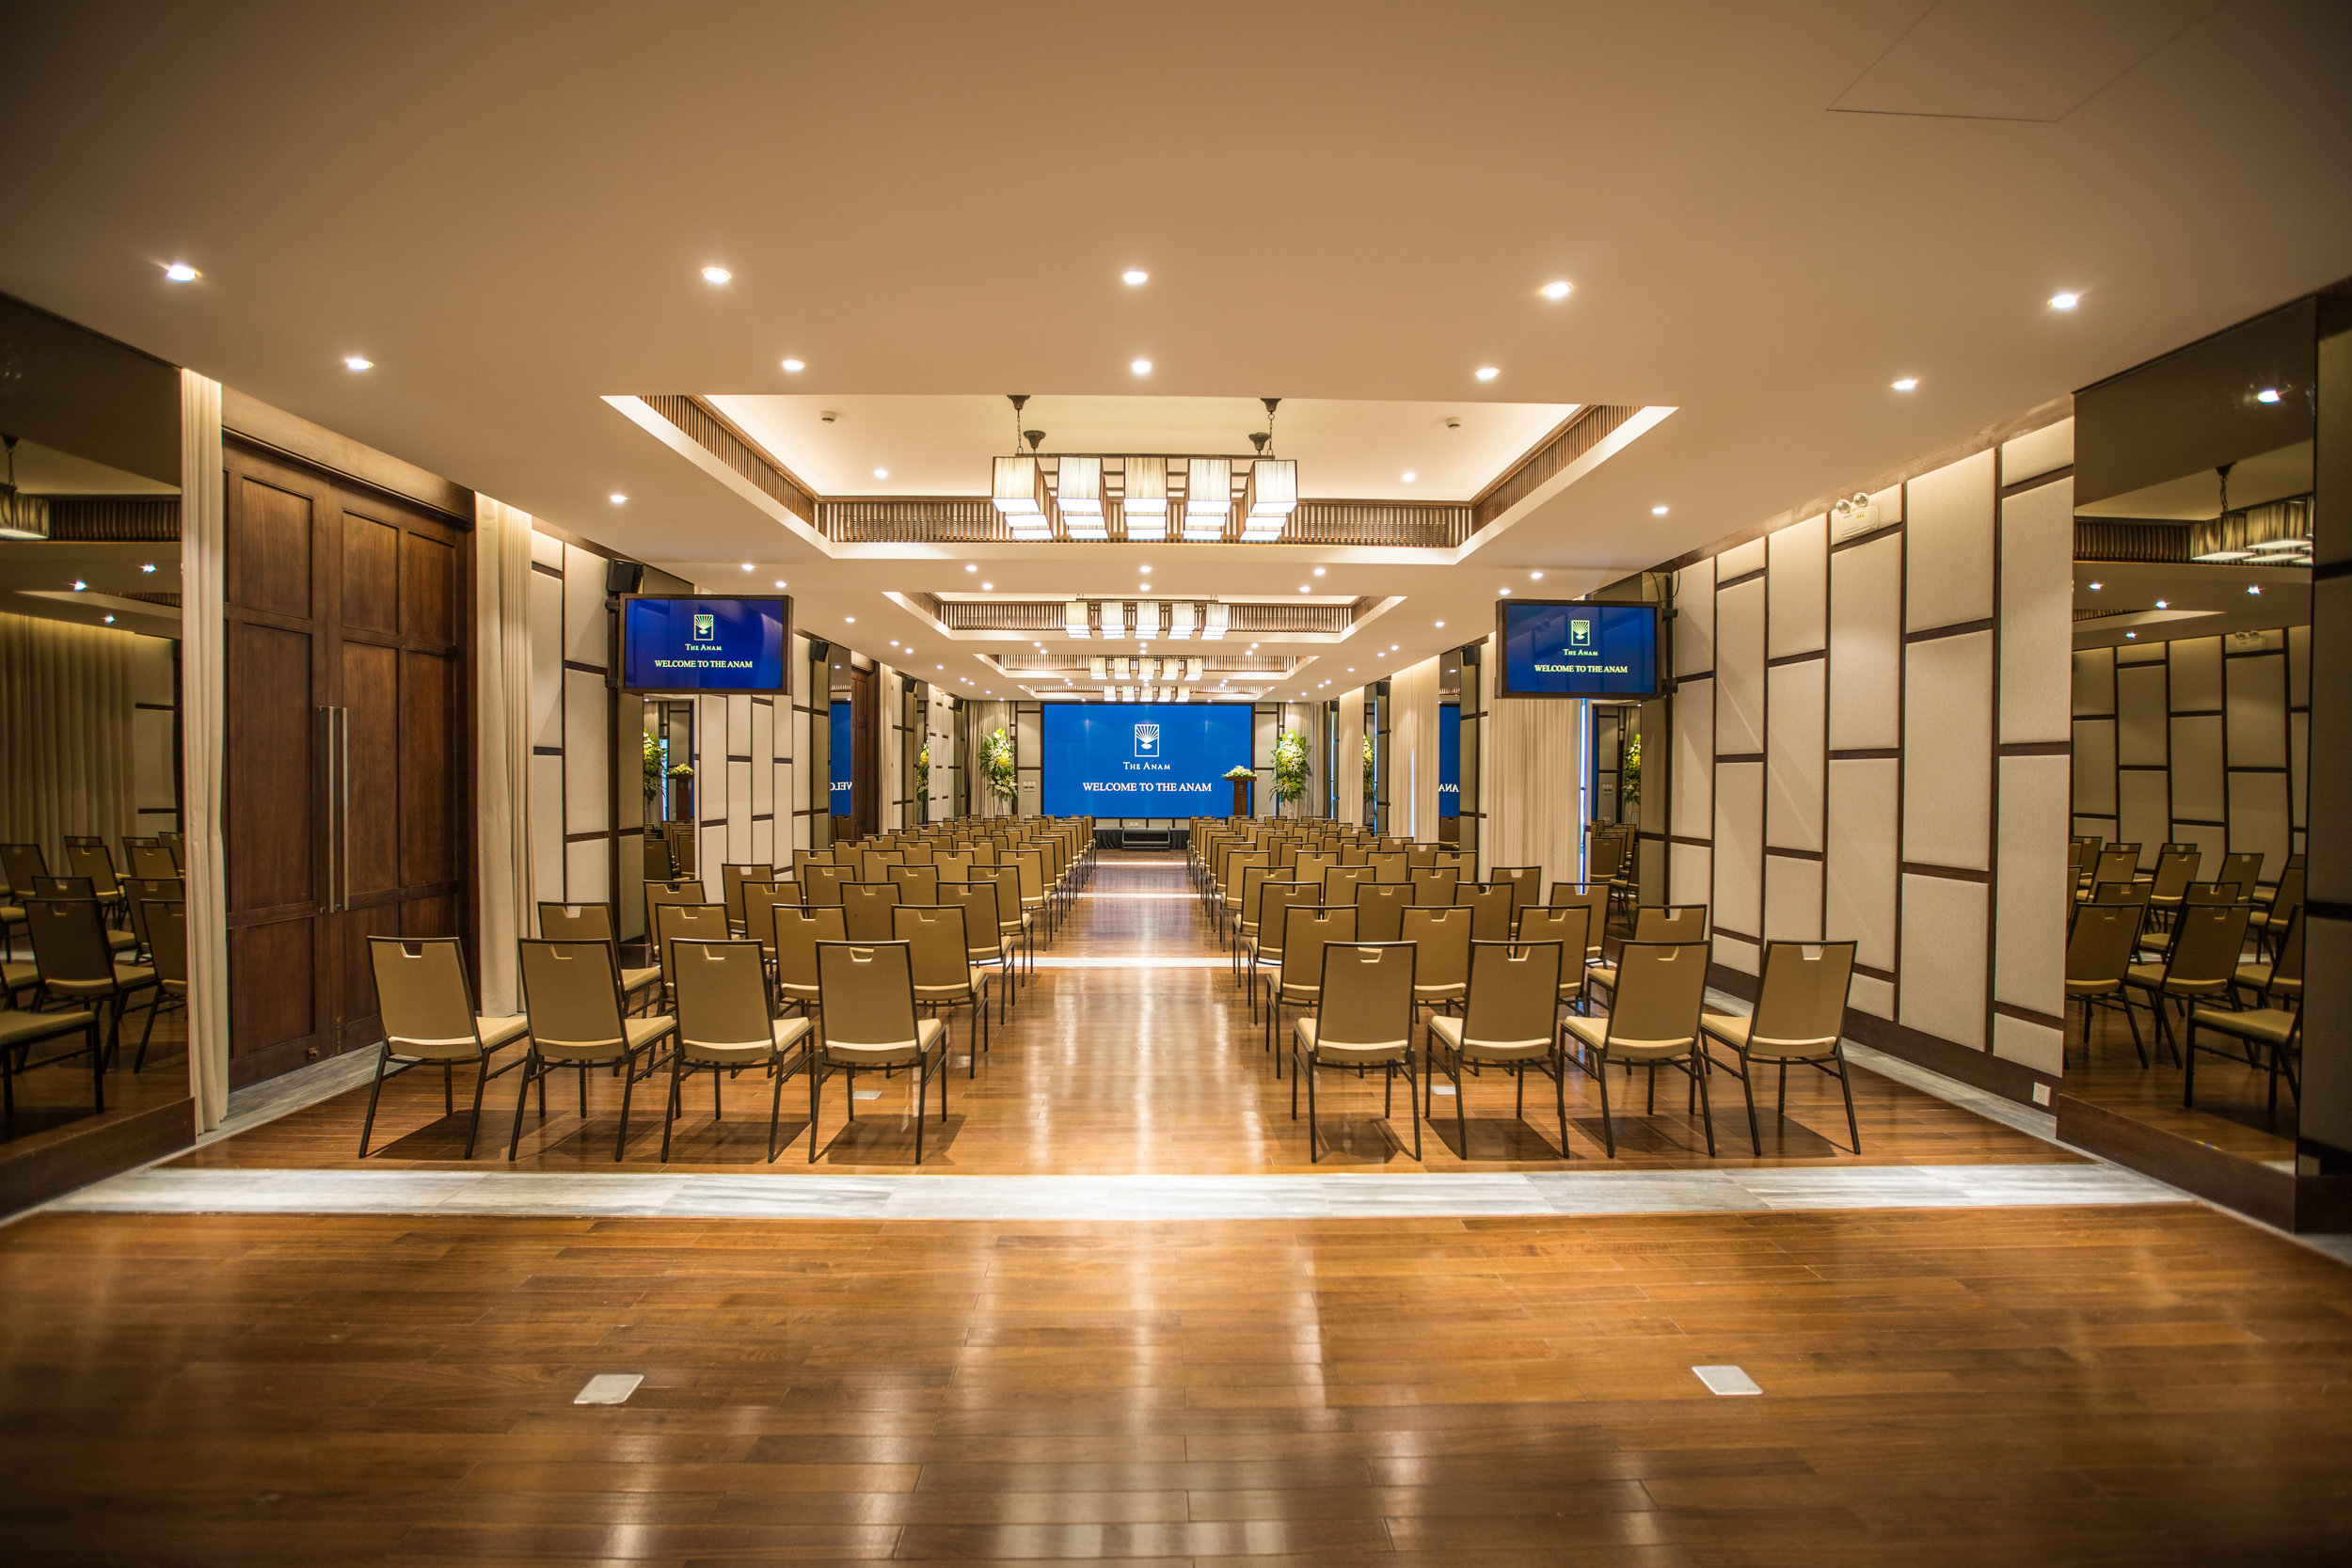 Conferences - Easily accessible by car, plane and train, corporate events planners and attendees from Ho Chi Minh City, Hanoi and beyond now have a reinvigorating beachfront location for their next MICE (Meeting, Incentive, Conference, Exhibition) event.